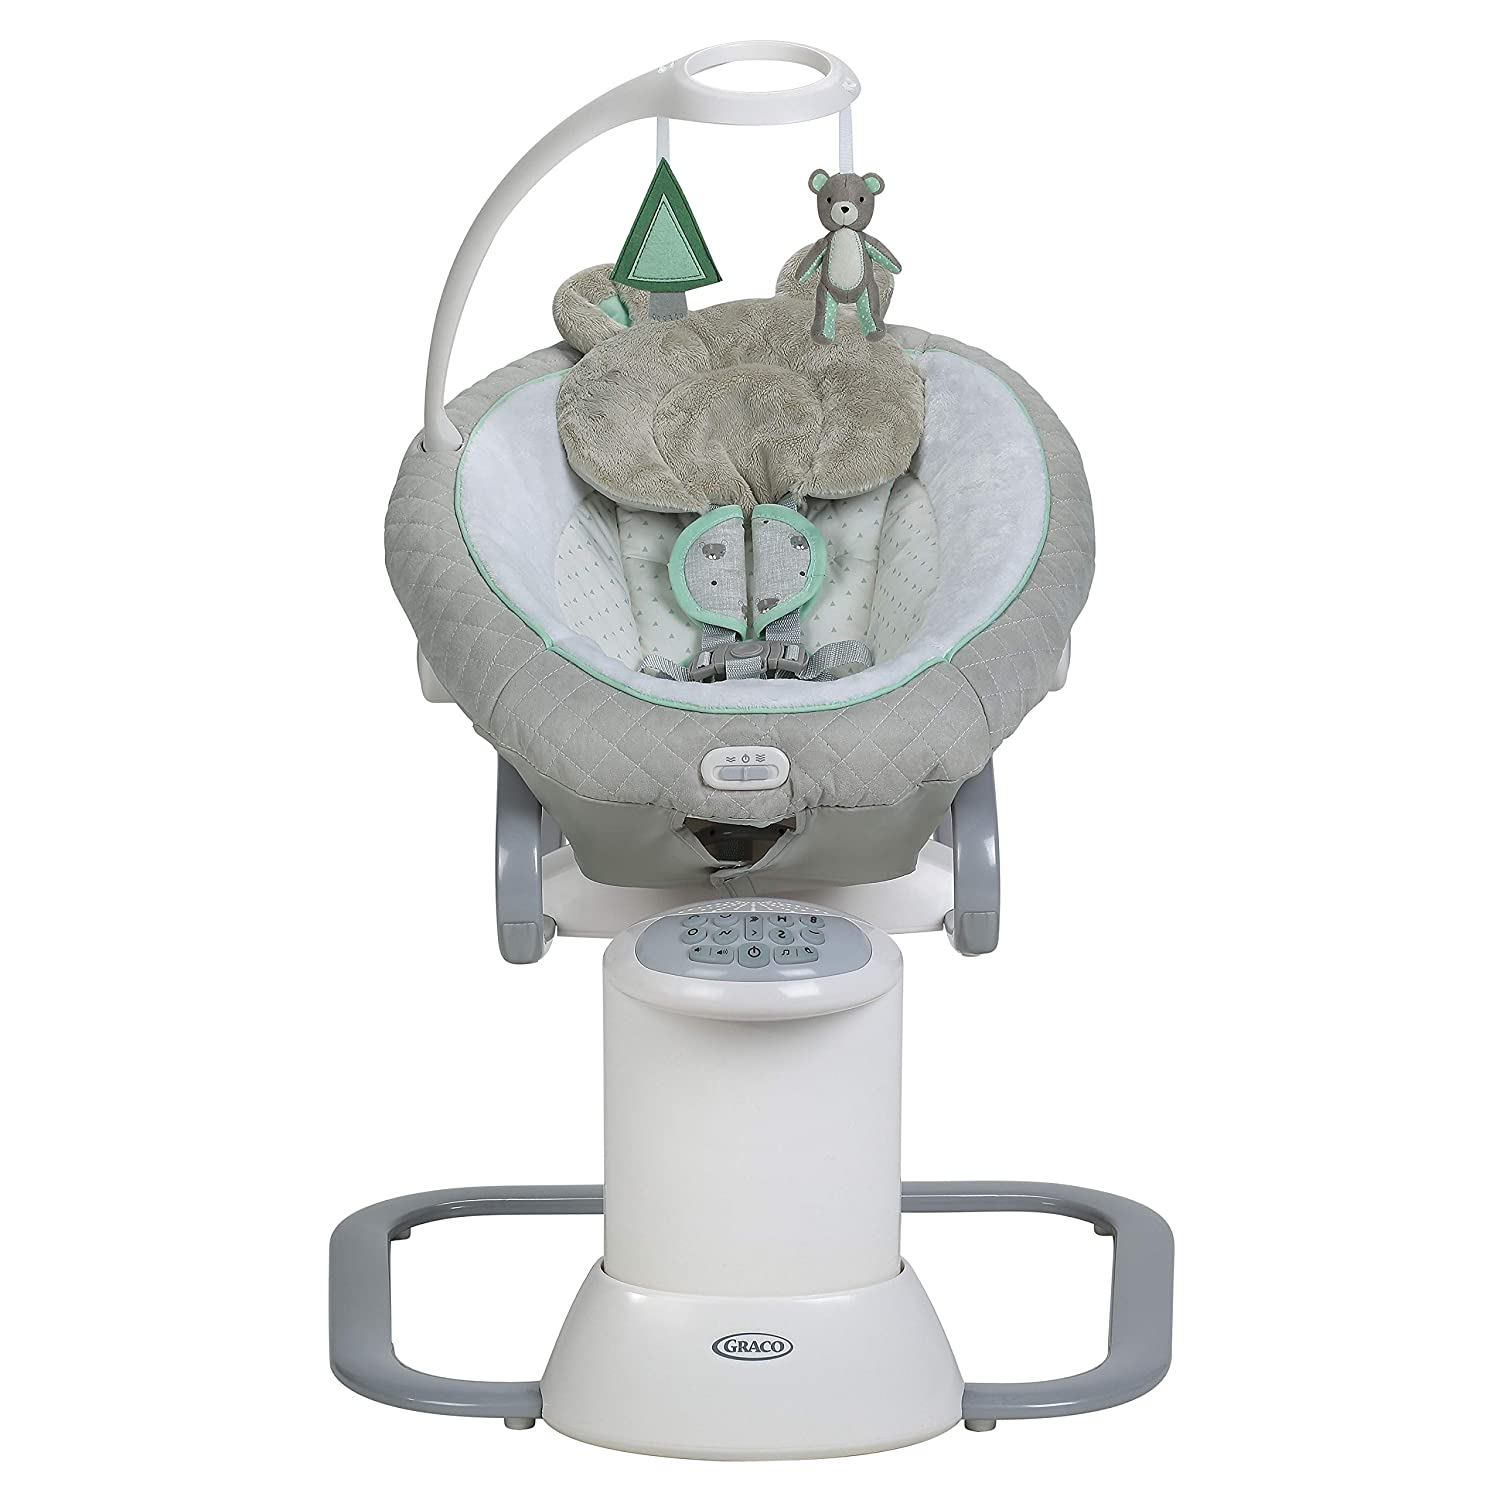 Graco EveryWay Soother Best Baby Swing with Removable Rocker